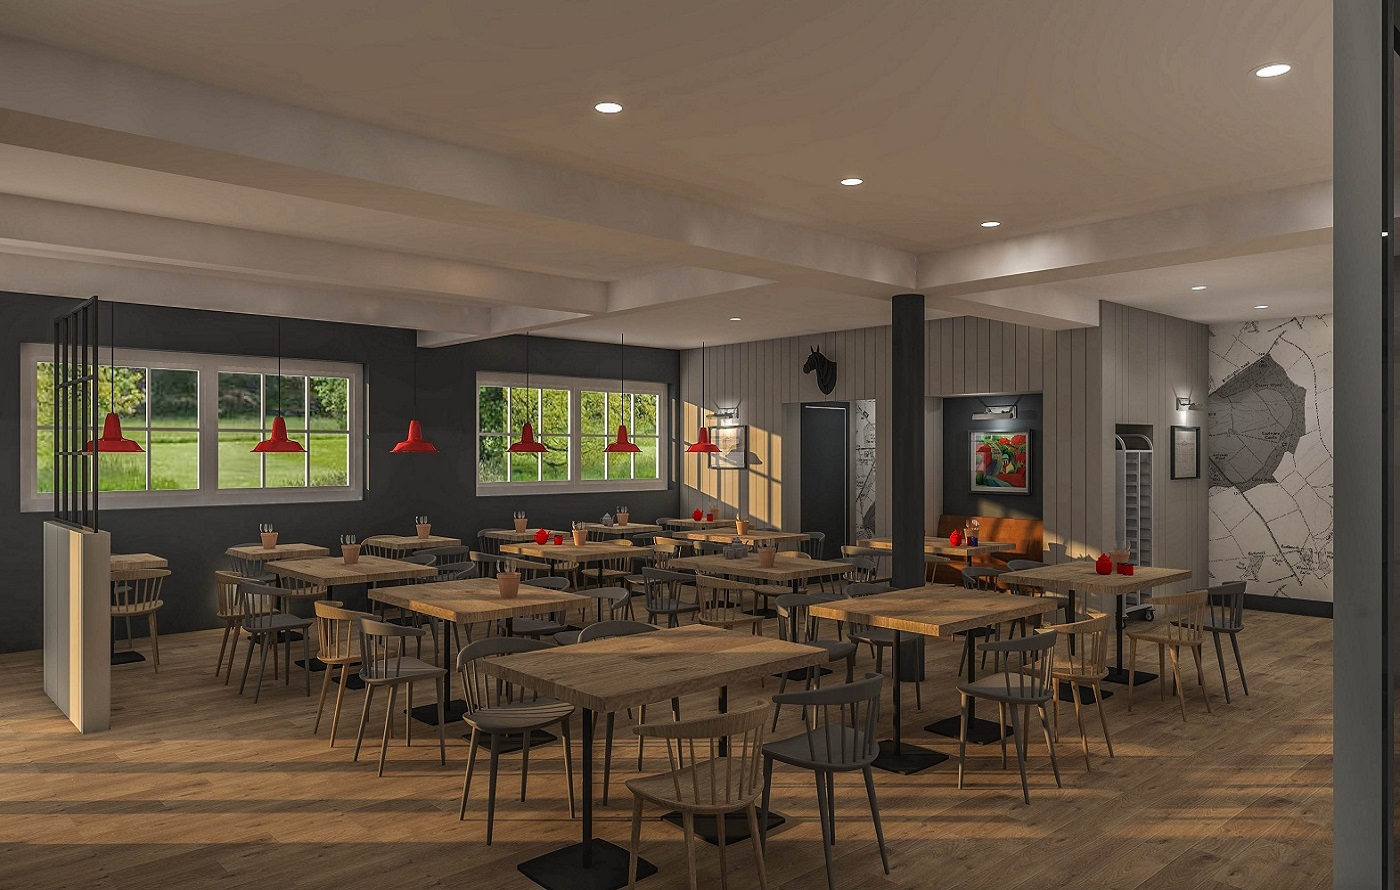 Projected image of the new Coach House Cafe